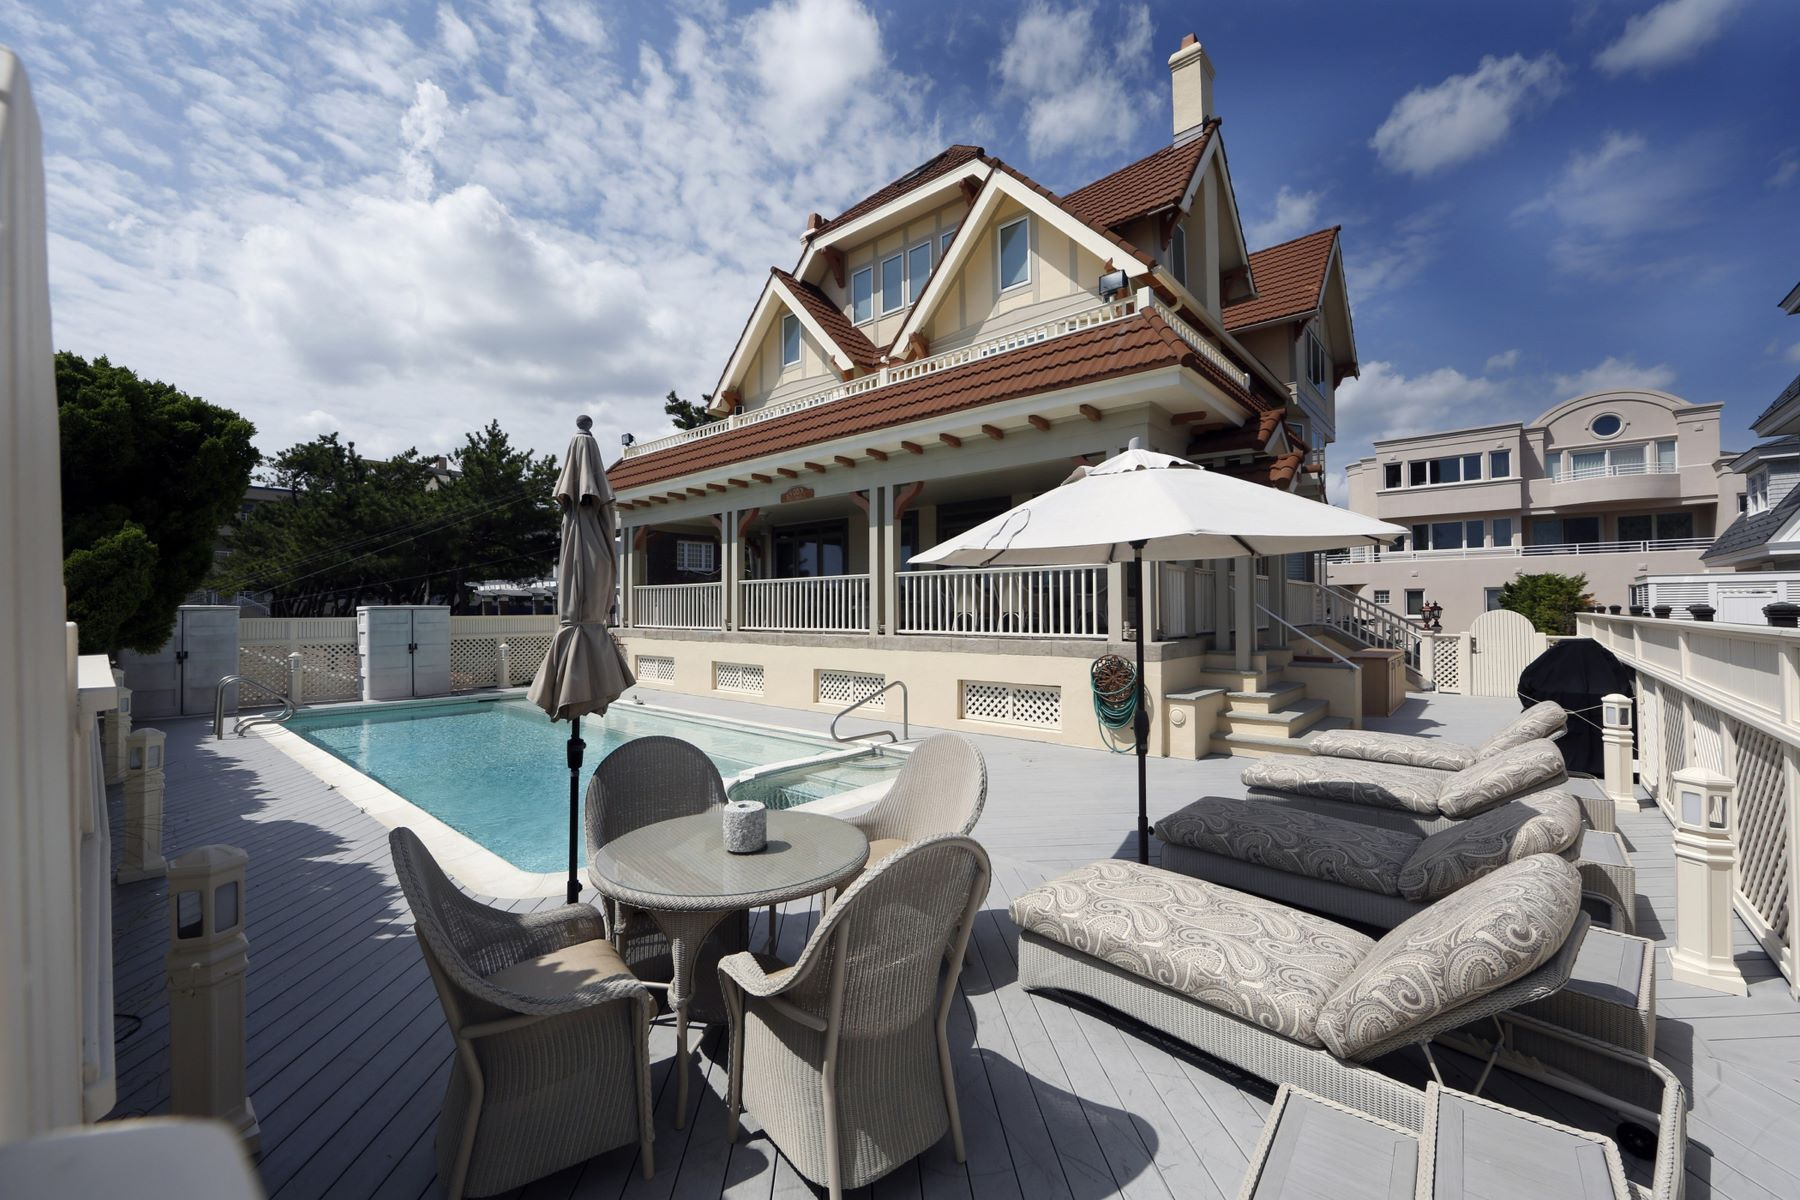 Single Family Home for Sale at Ventnor, New Jersey 08406 United States